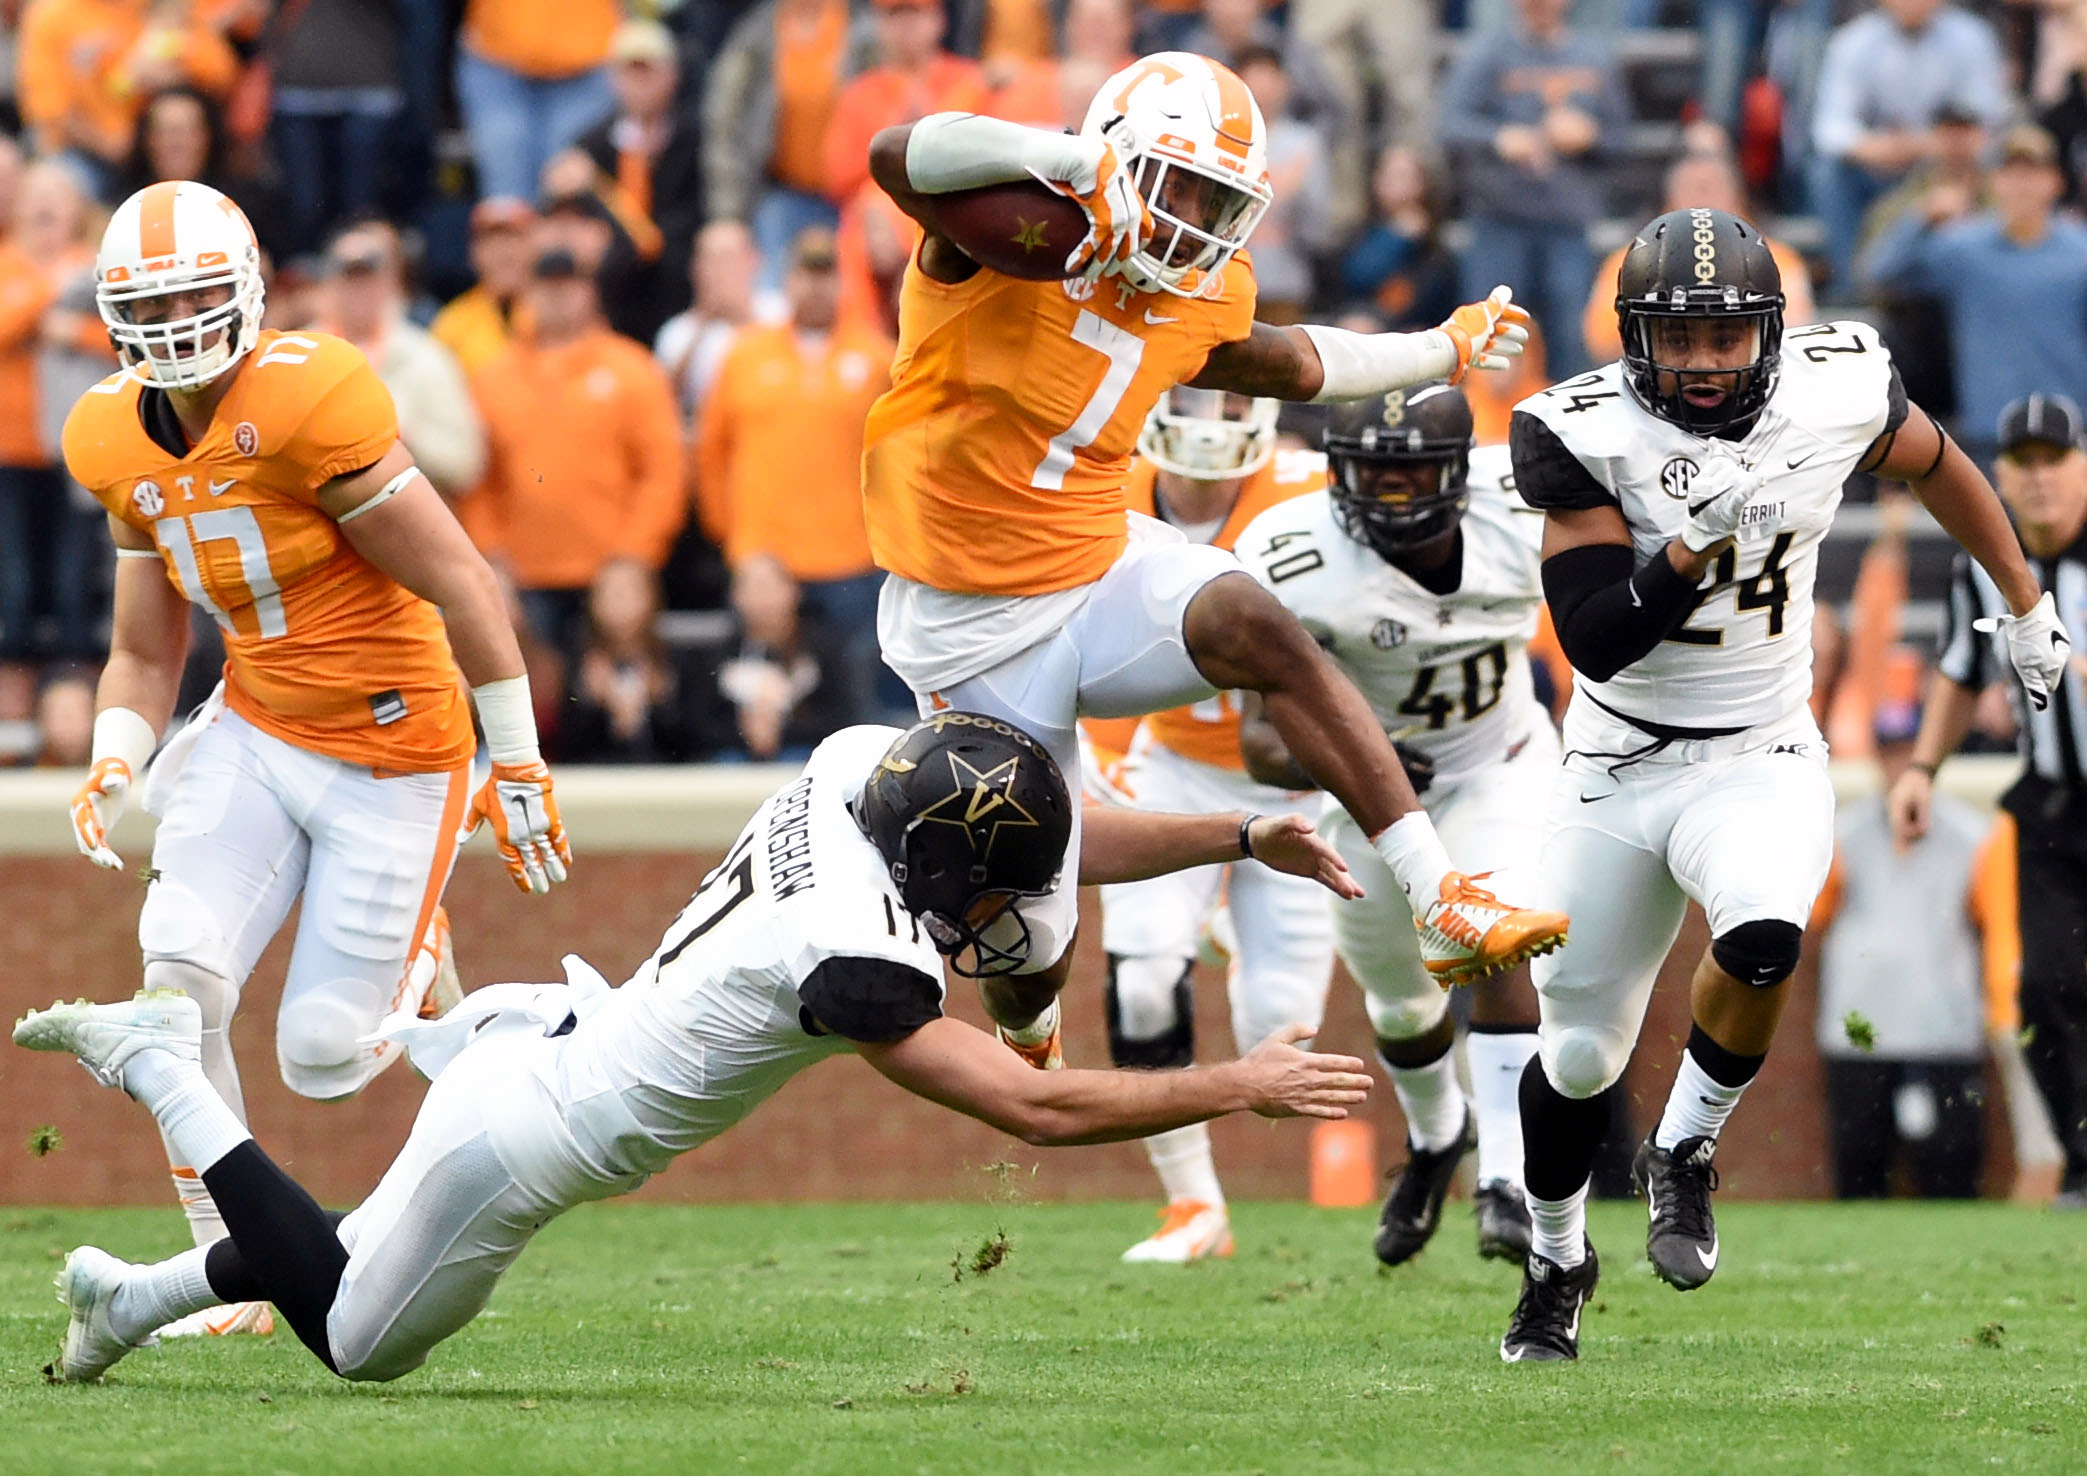 CORRECTS TO TENNESSEE DEFENSIVE BACK CAMERON SUTTON (7) FROM TENNESSEE WIDE RECEIVER PRESTON WILLIAMS (7) - Tennessee defensive back Cameron Sutton (7) leaps over Vanderbilt placekicker Tommy Openshaw (17) during the first half of an NCAA college football